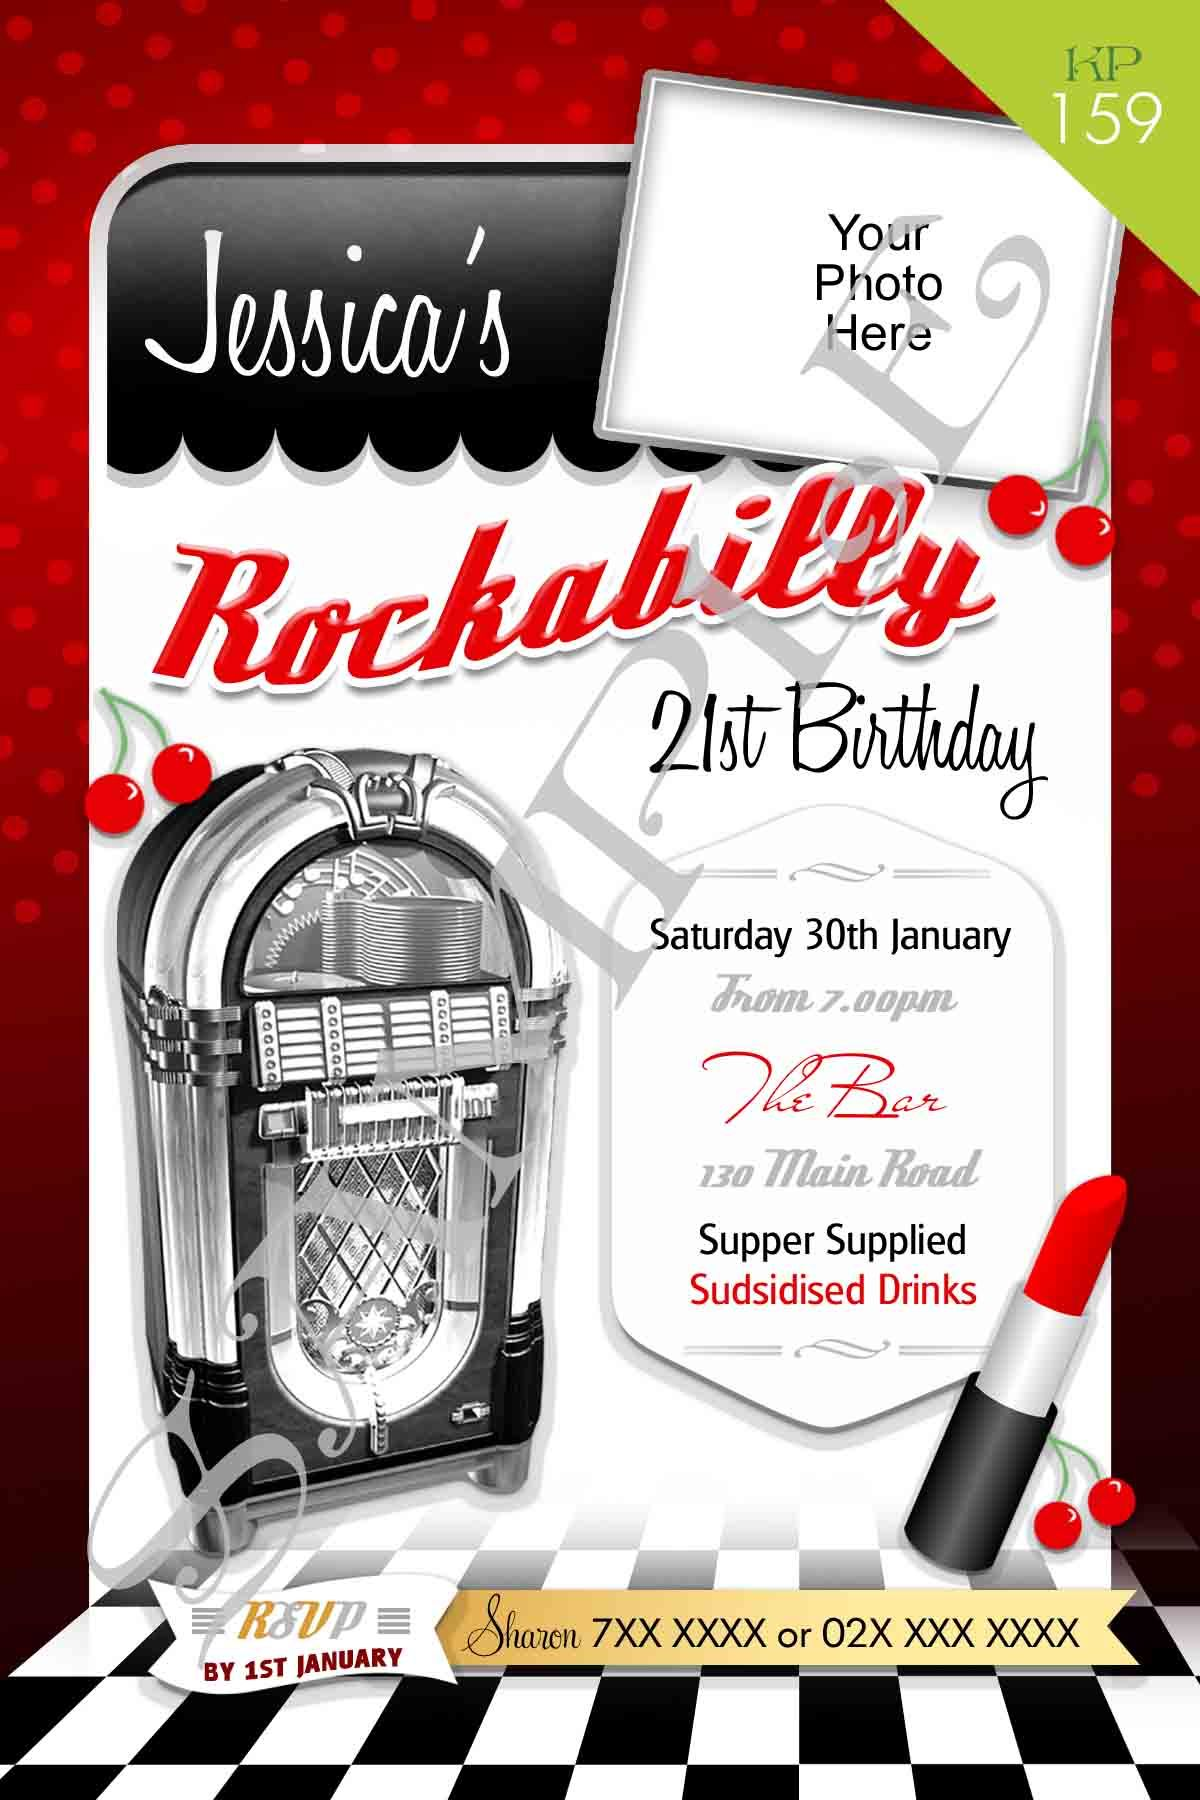 Rockabilly invitation designed with your information and